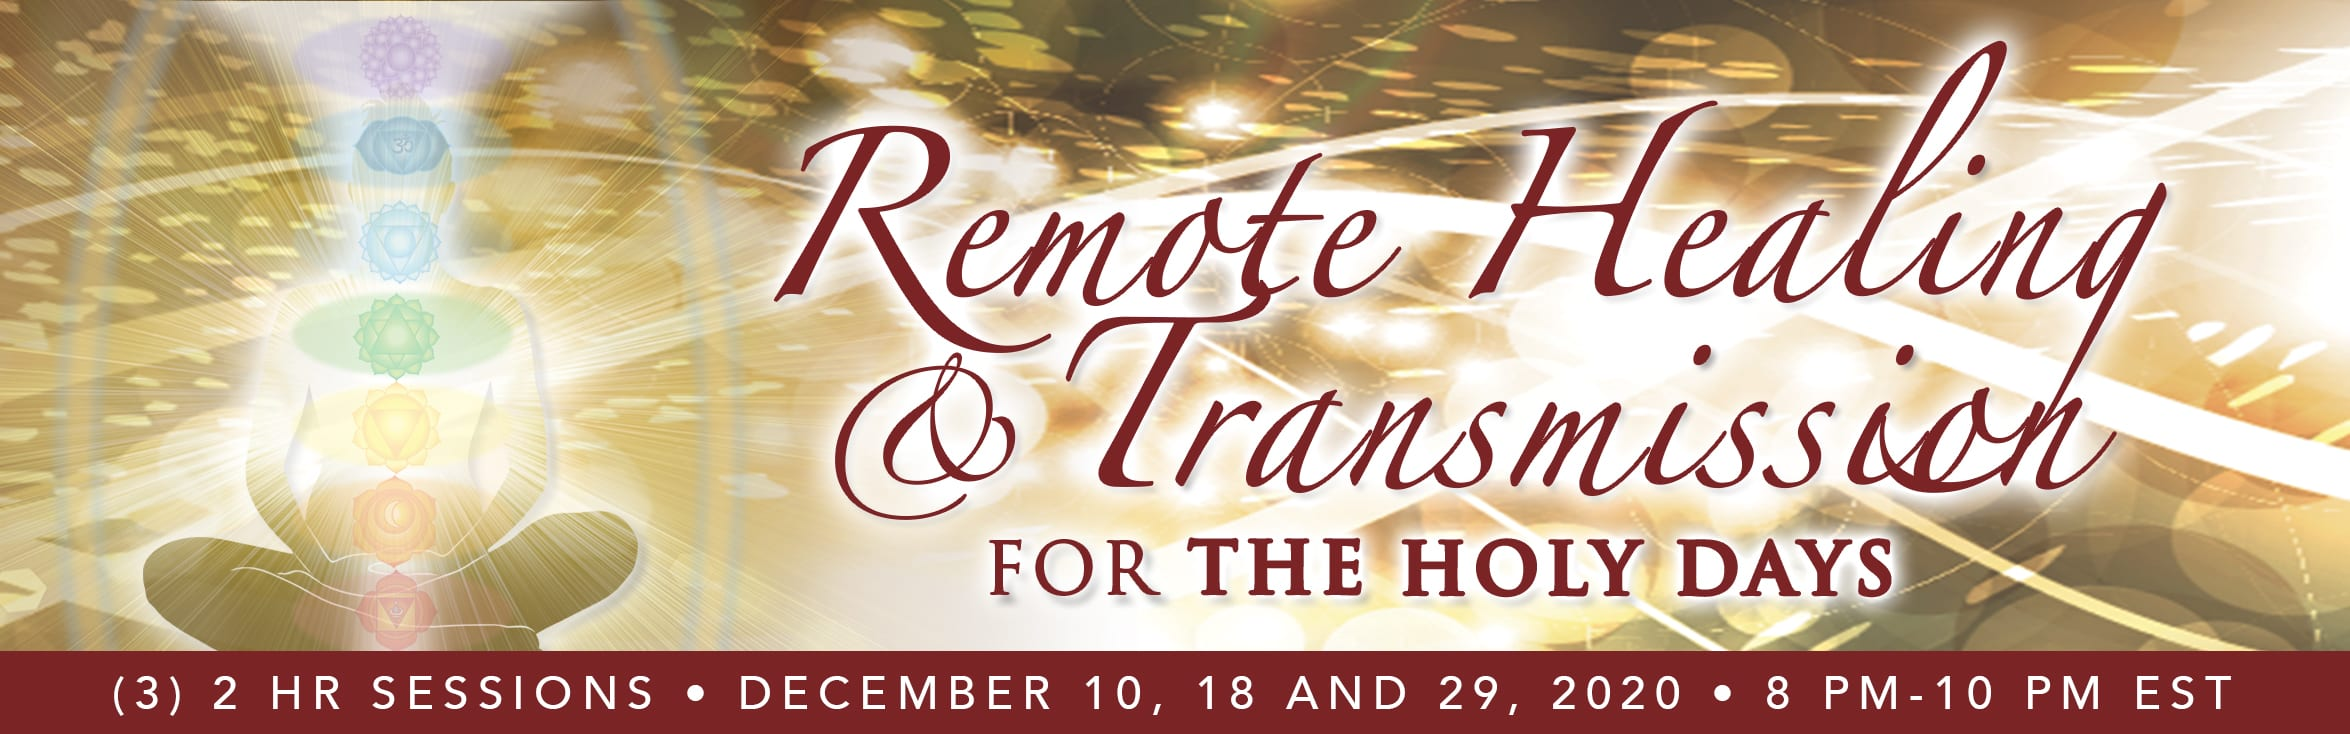 Remote Healing and Transmission for The Holy Days banner